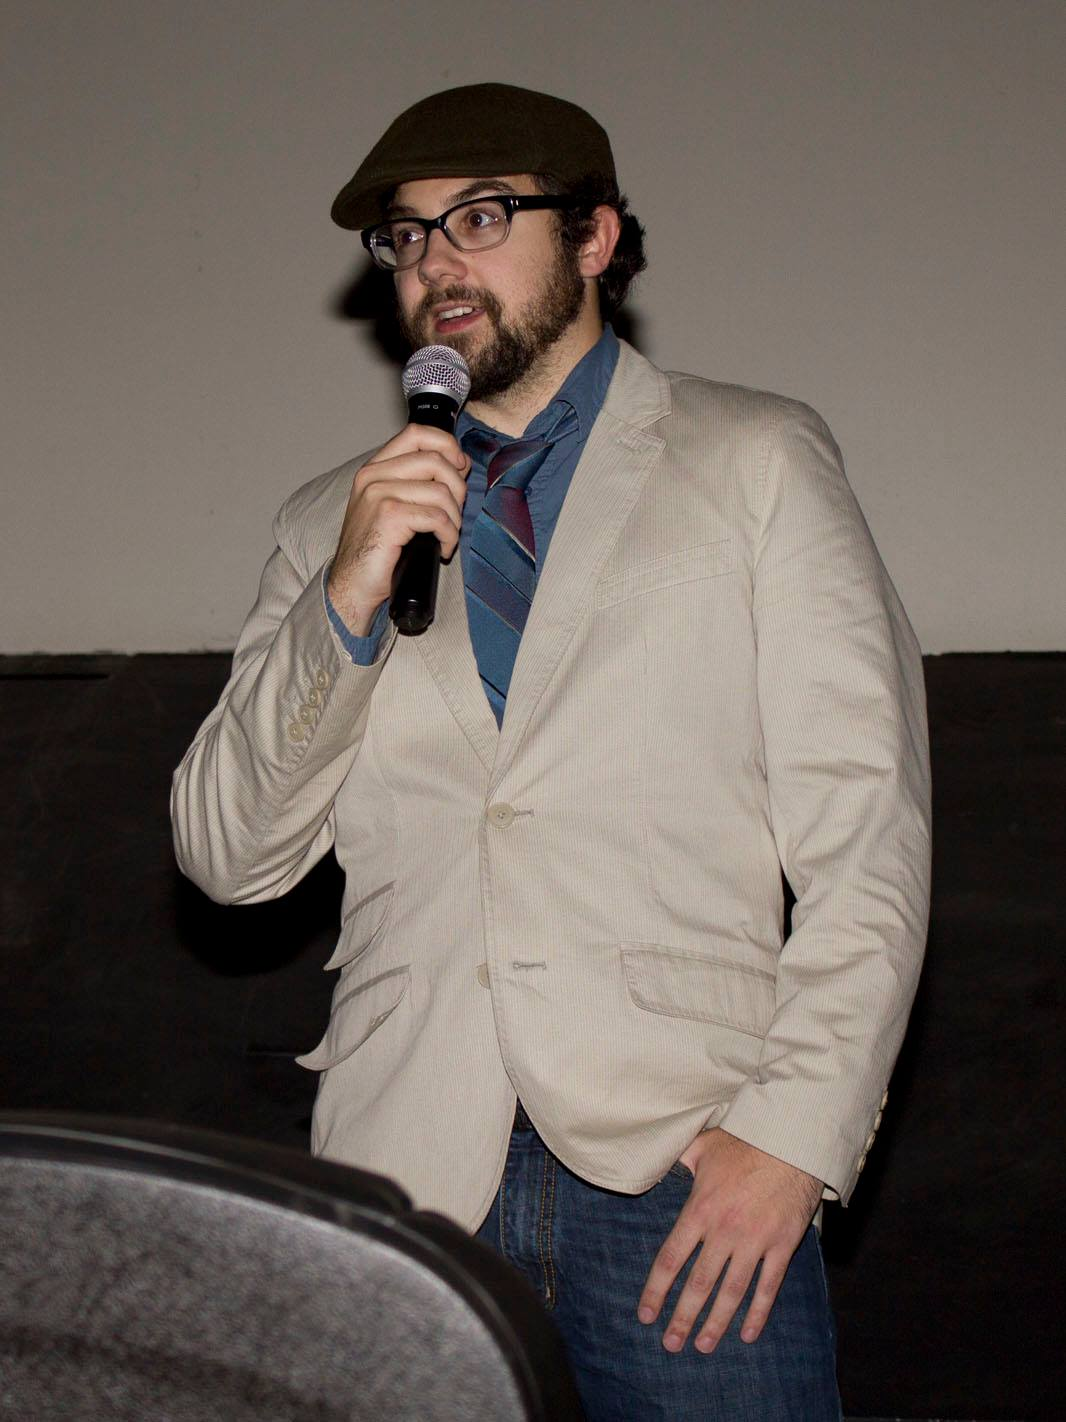 Speaking at BNFFF in 2015.